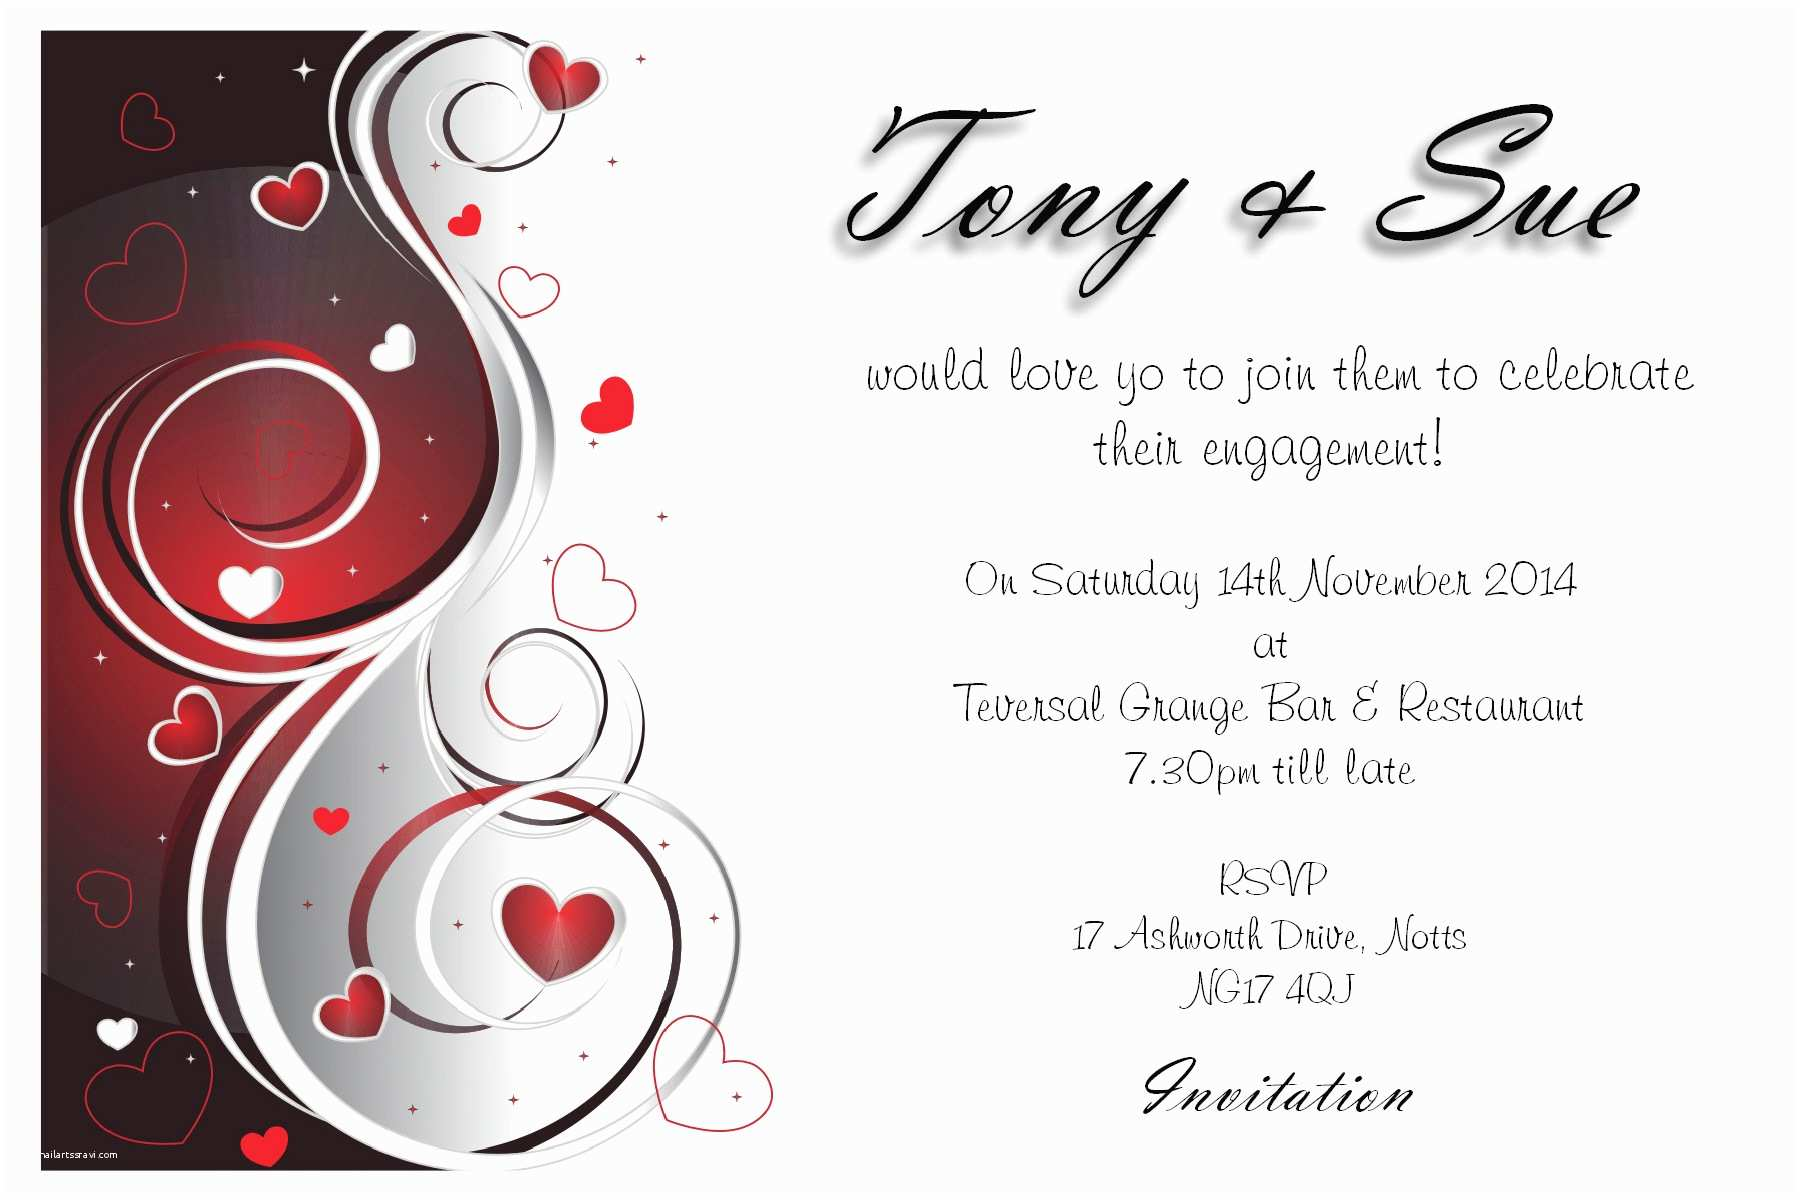 Engagement Party Invitations Templates Engagement Party Invitation Idea